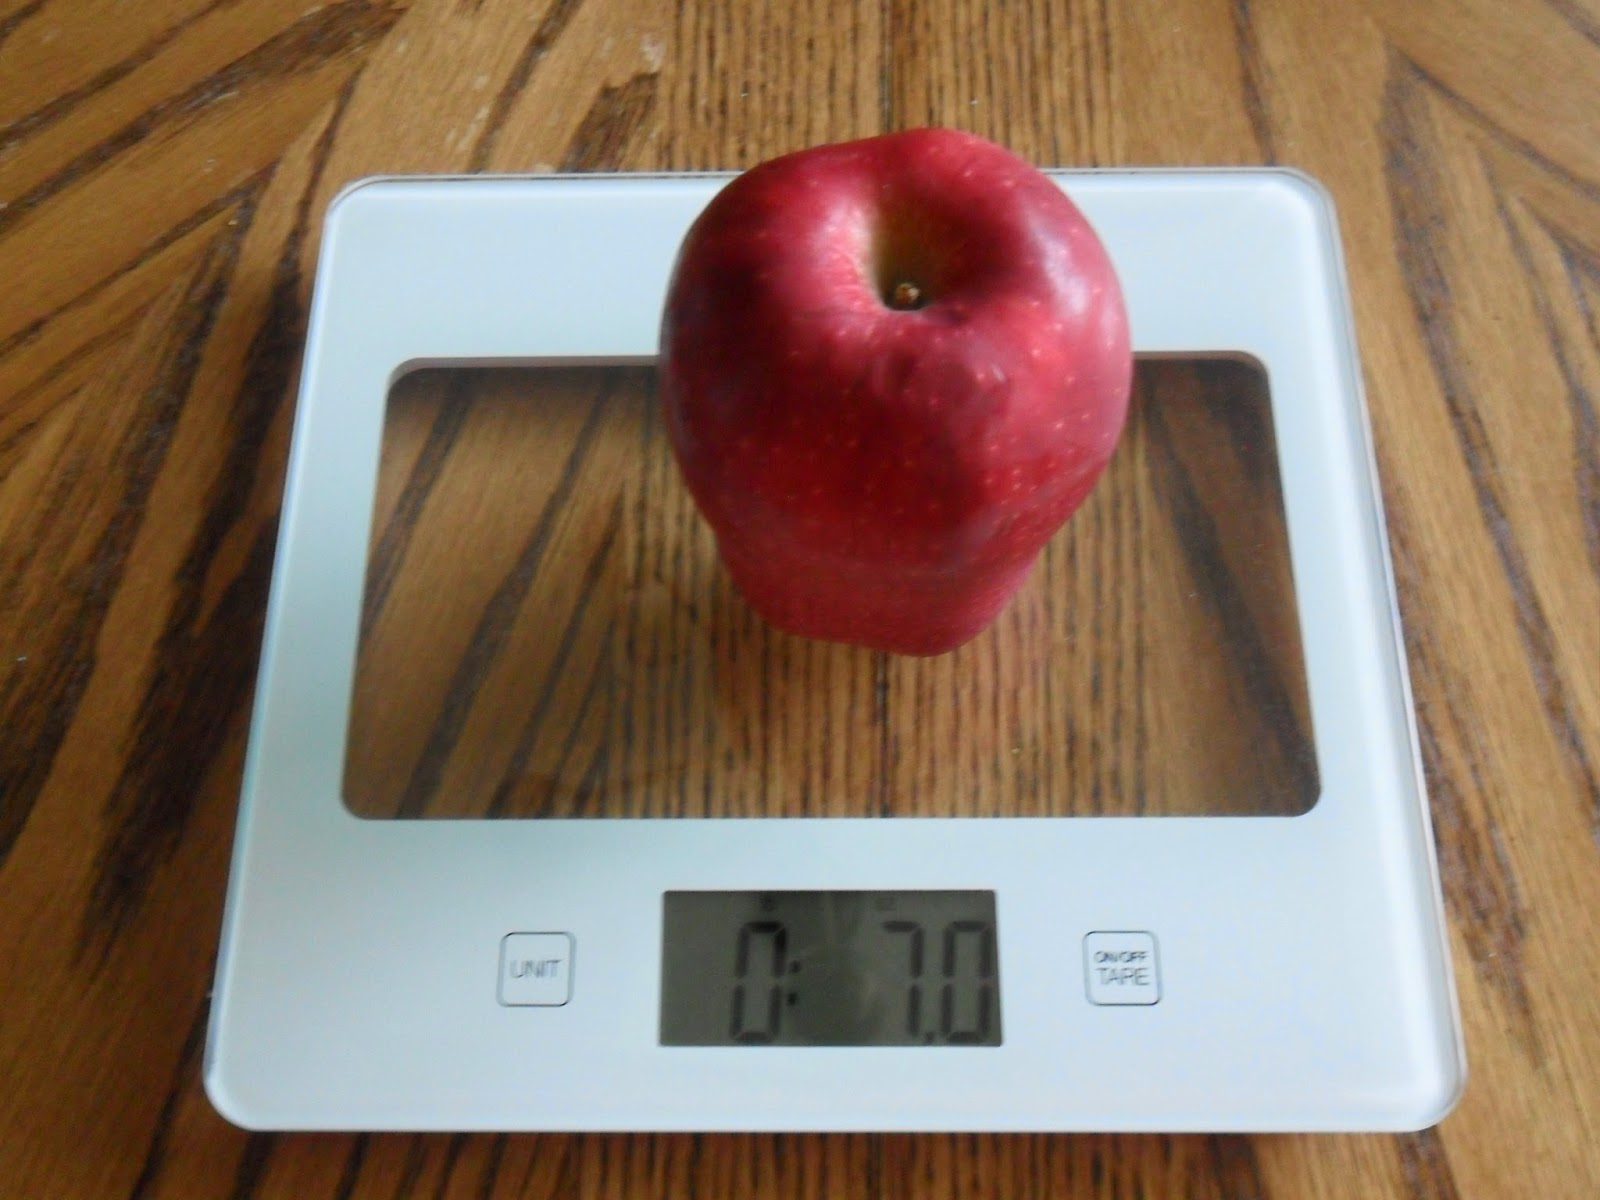 Surpahs Kitchen and Bathroom Digital Scales, Review